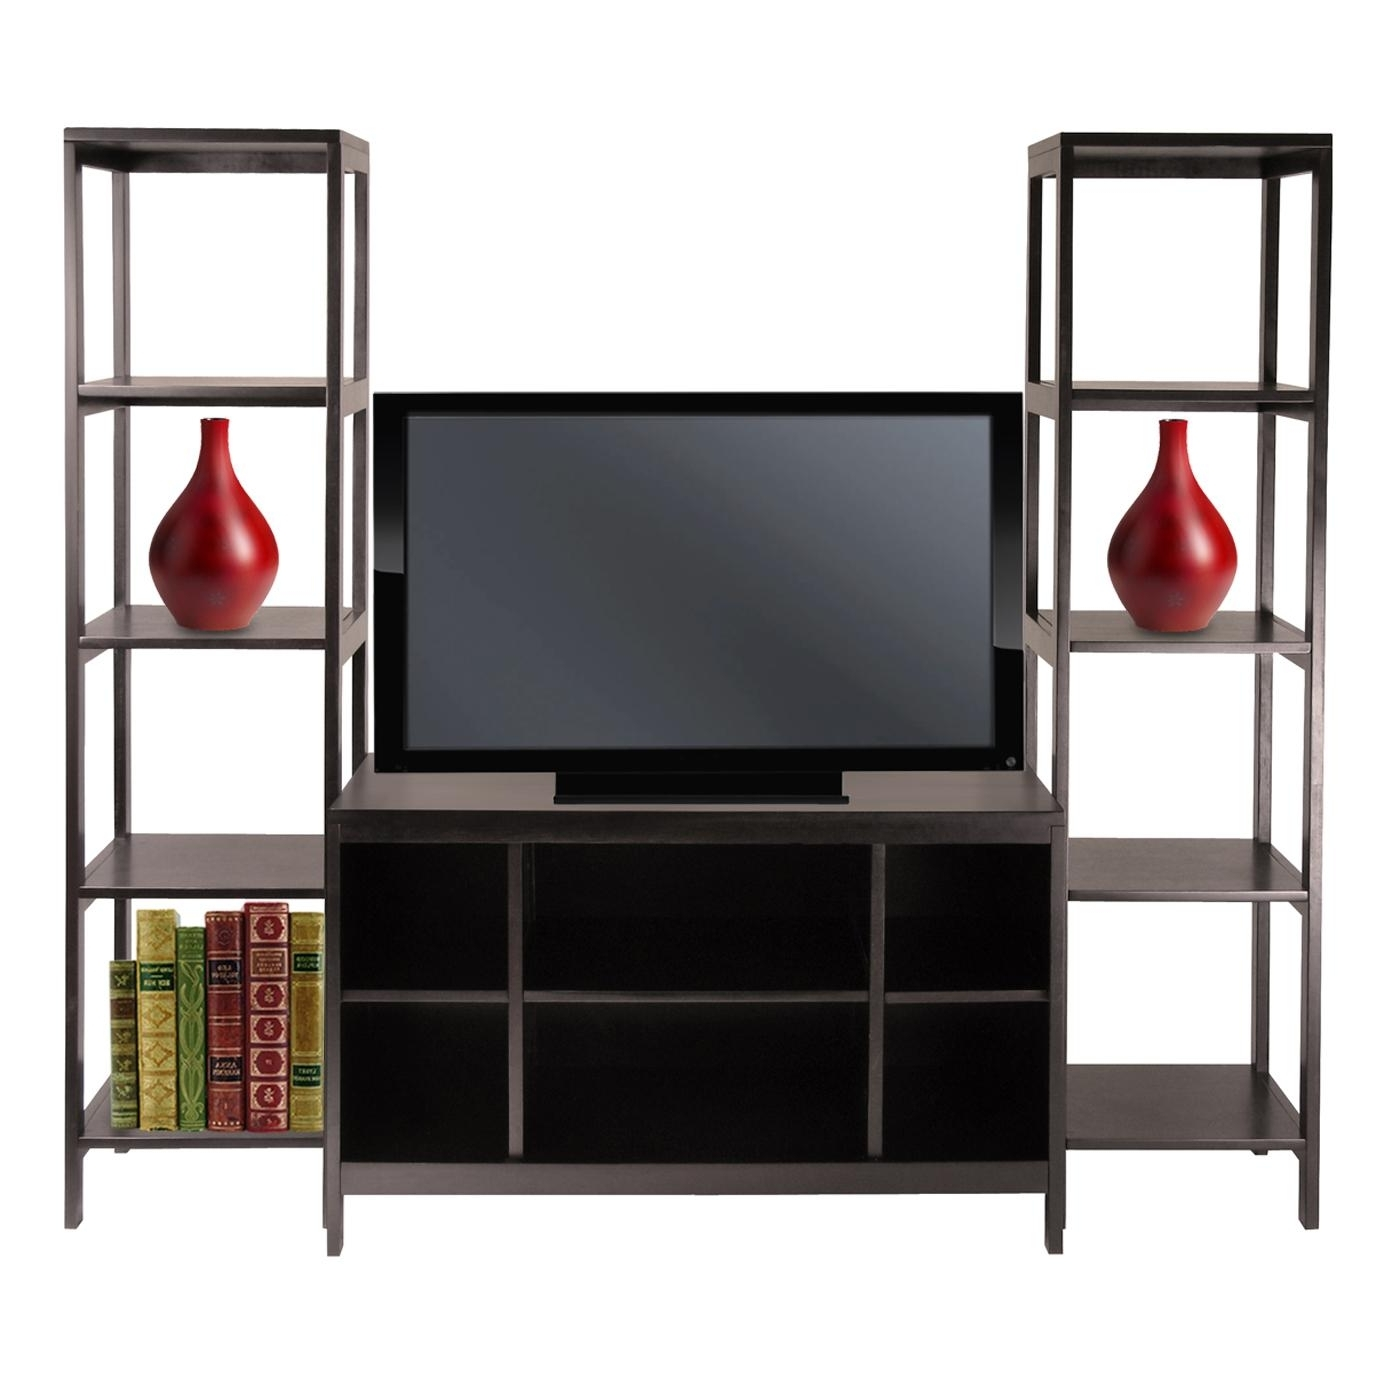 2017 Tv Stand With Bookcases Home Decor Interior Exterior Lovely Under Inside Bookcases With Tv Stand (View 10 of 15)